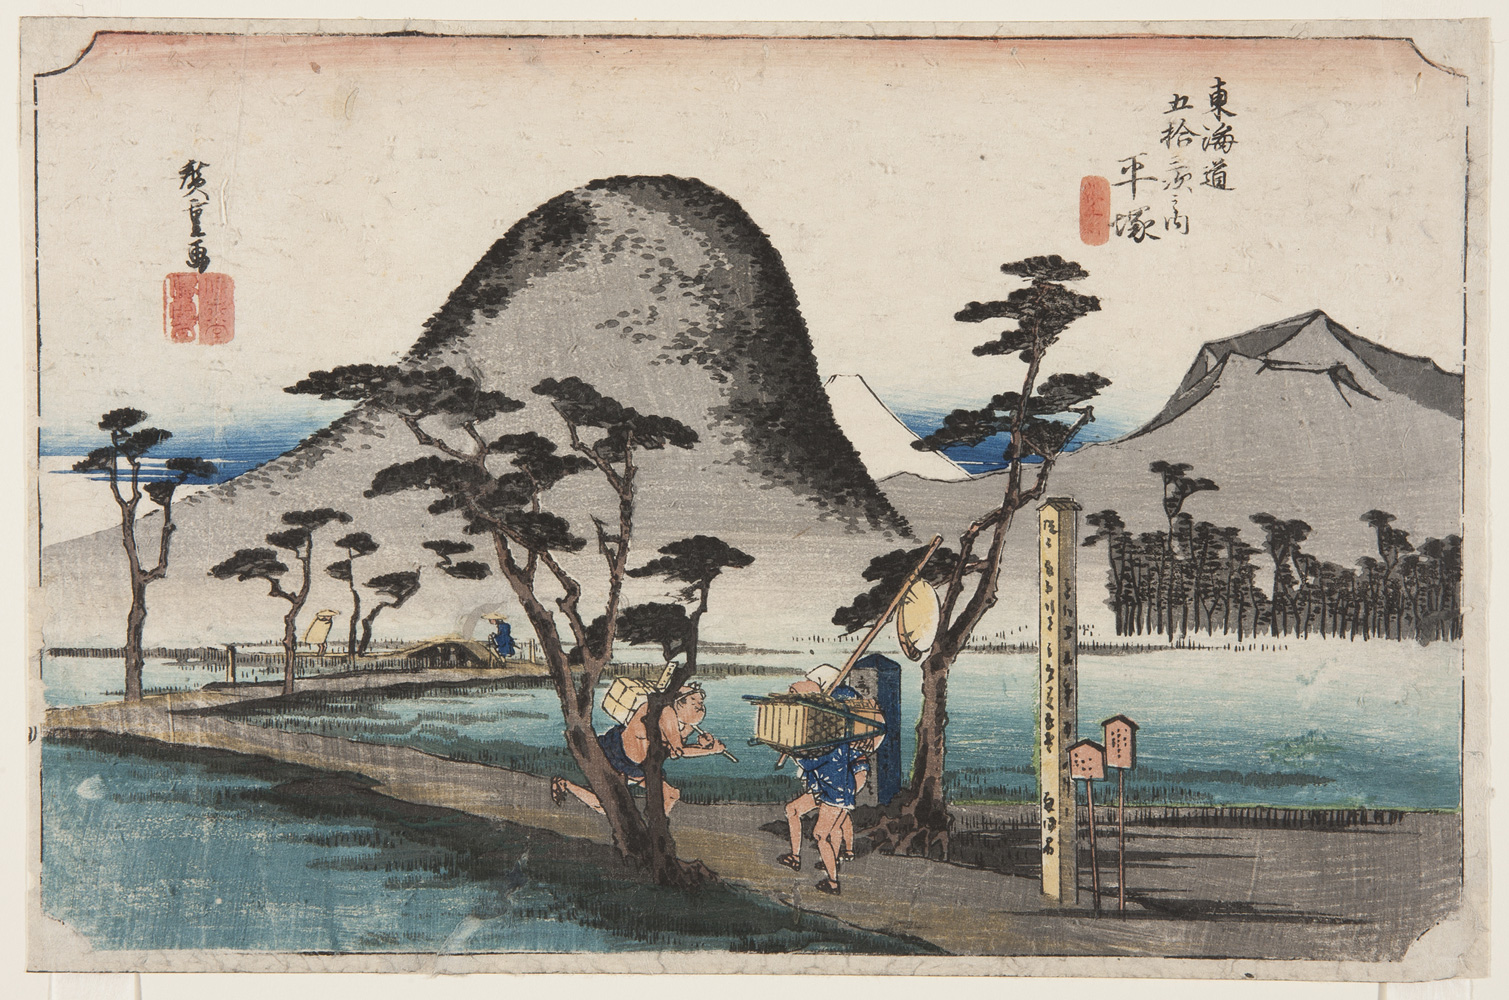 japanese print of a road zig-zagging through a marshy area. on the road a delivery man carrying a box on his back runs past two walking travellers